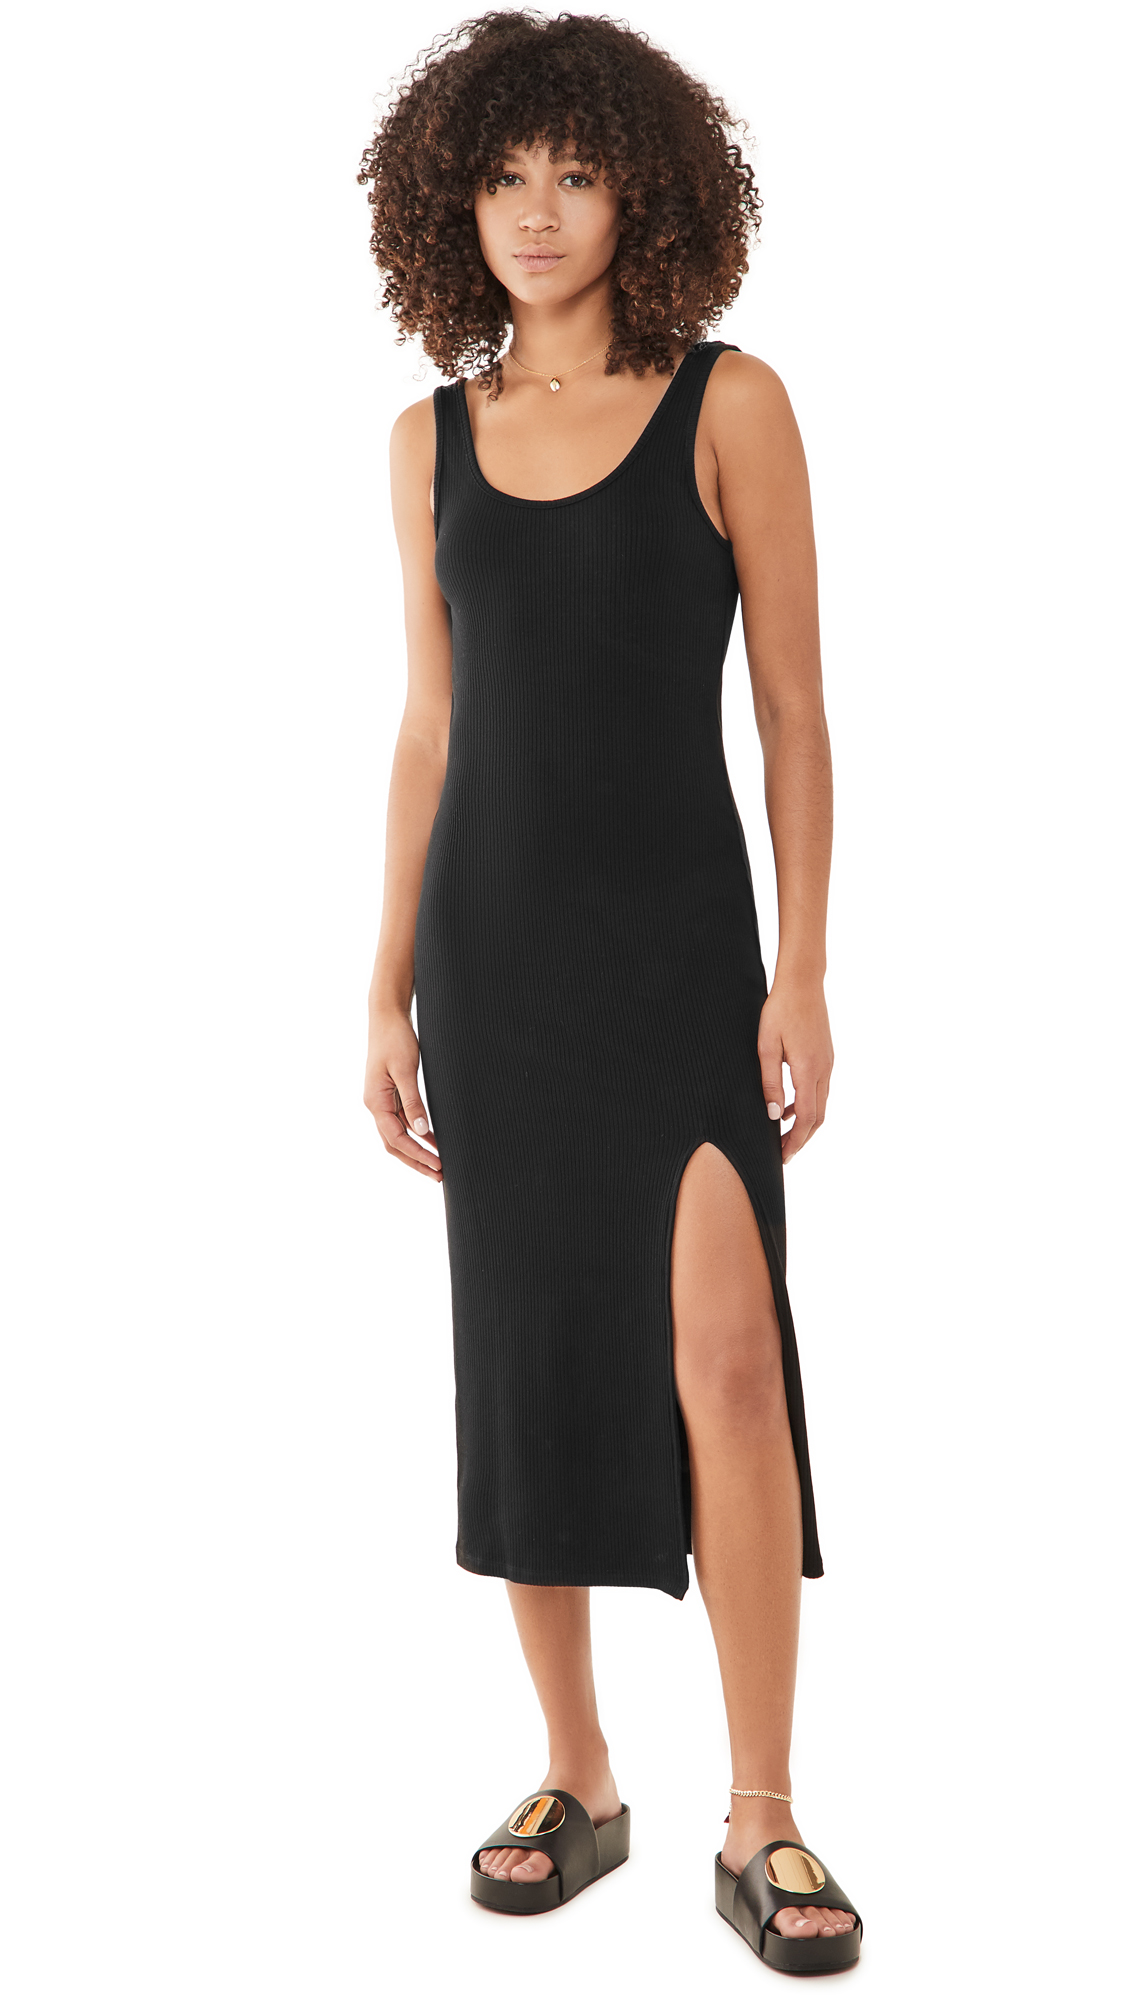 Z Supply Melina Rib Dress